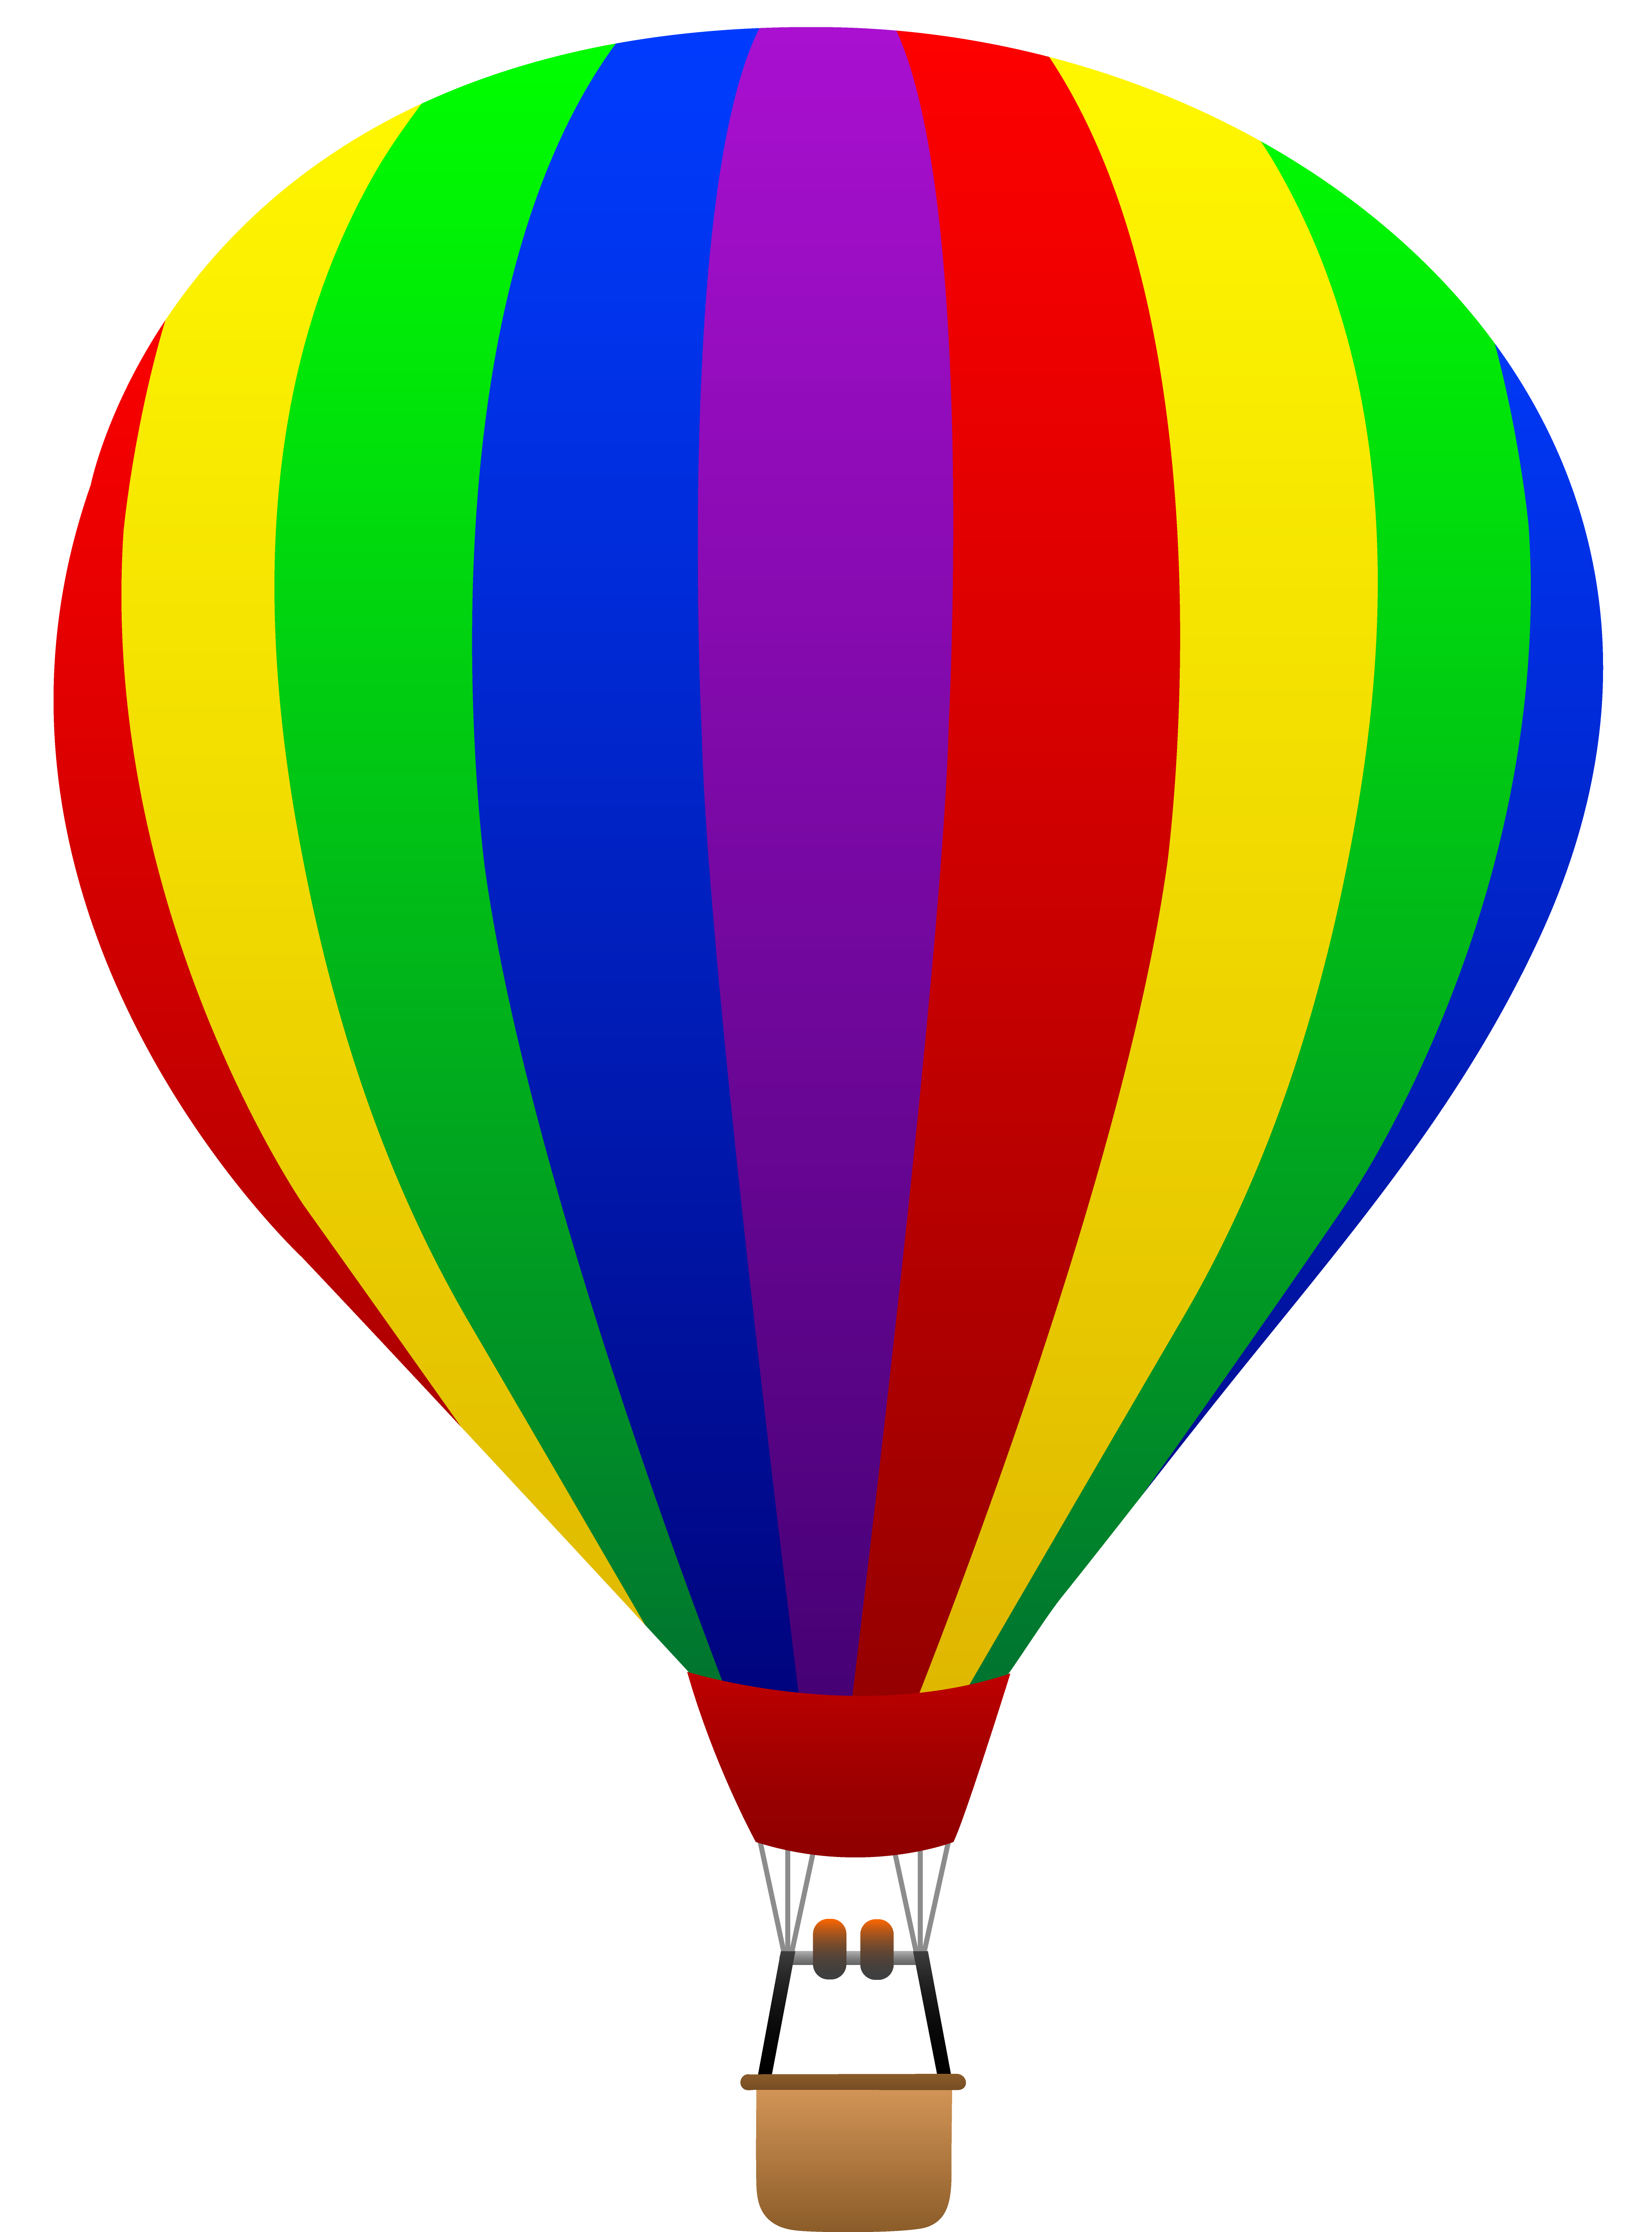 Free clip art of a fun rainbow striped hot air balloon for Interesting art pictures